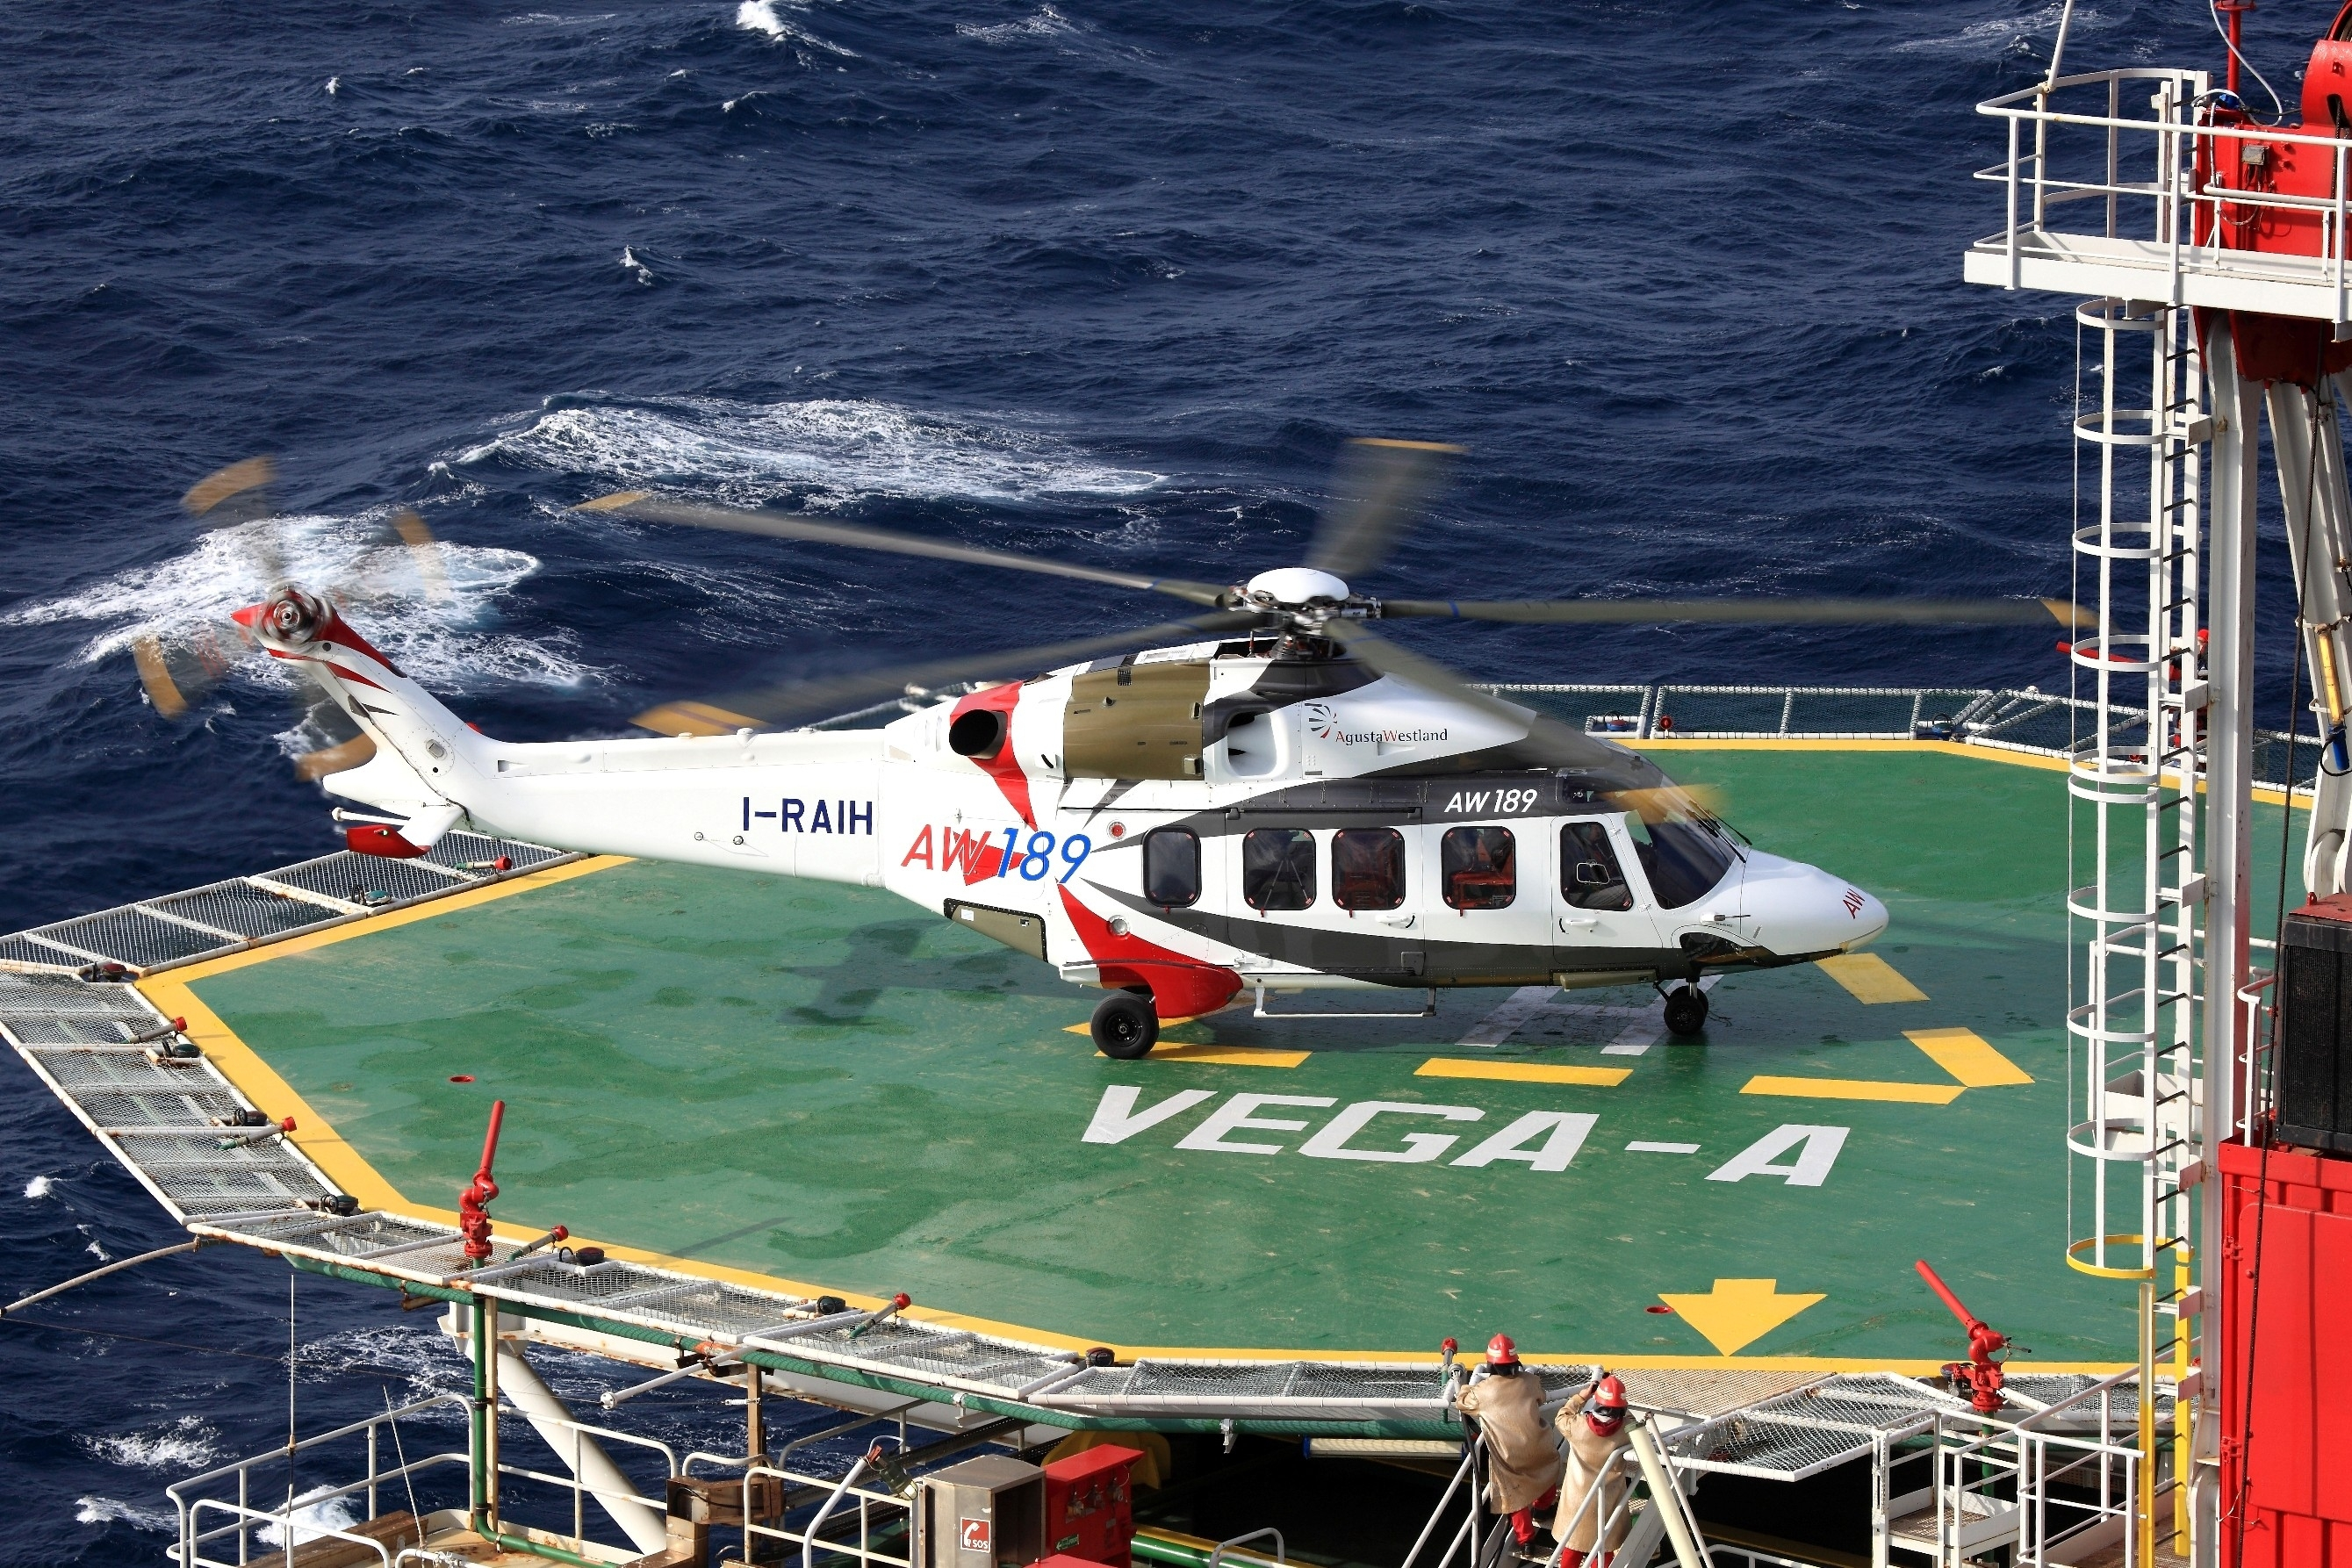 An AugustaWestland AW189 helicopter